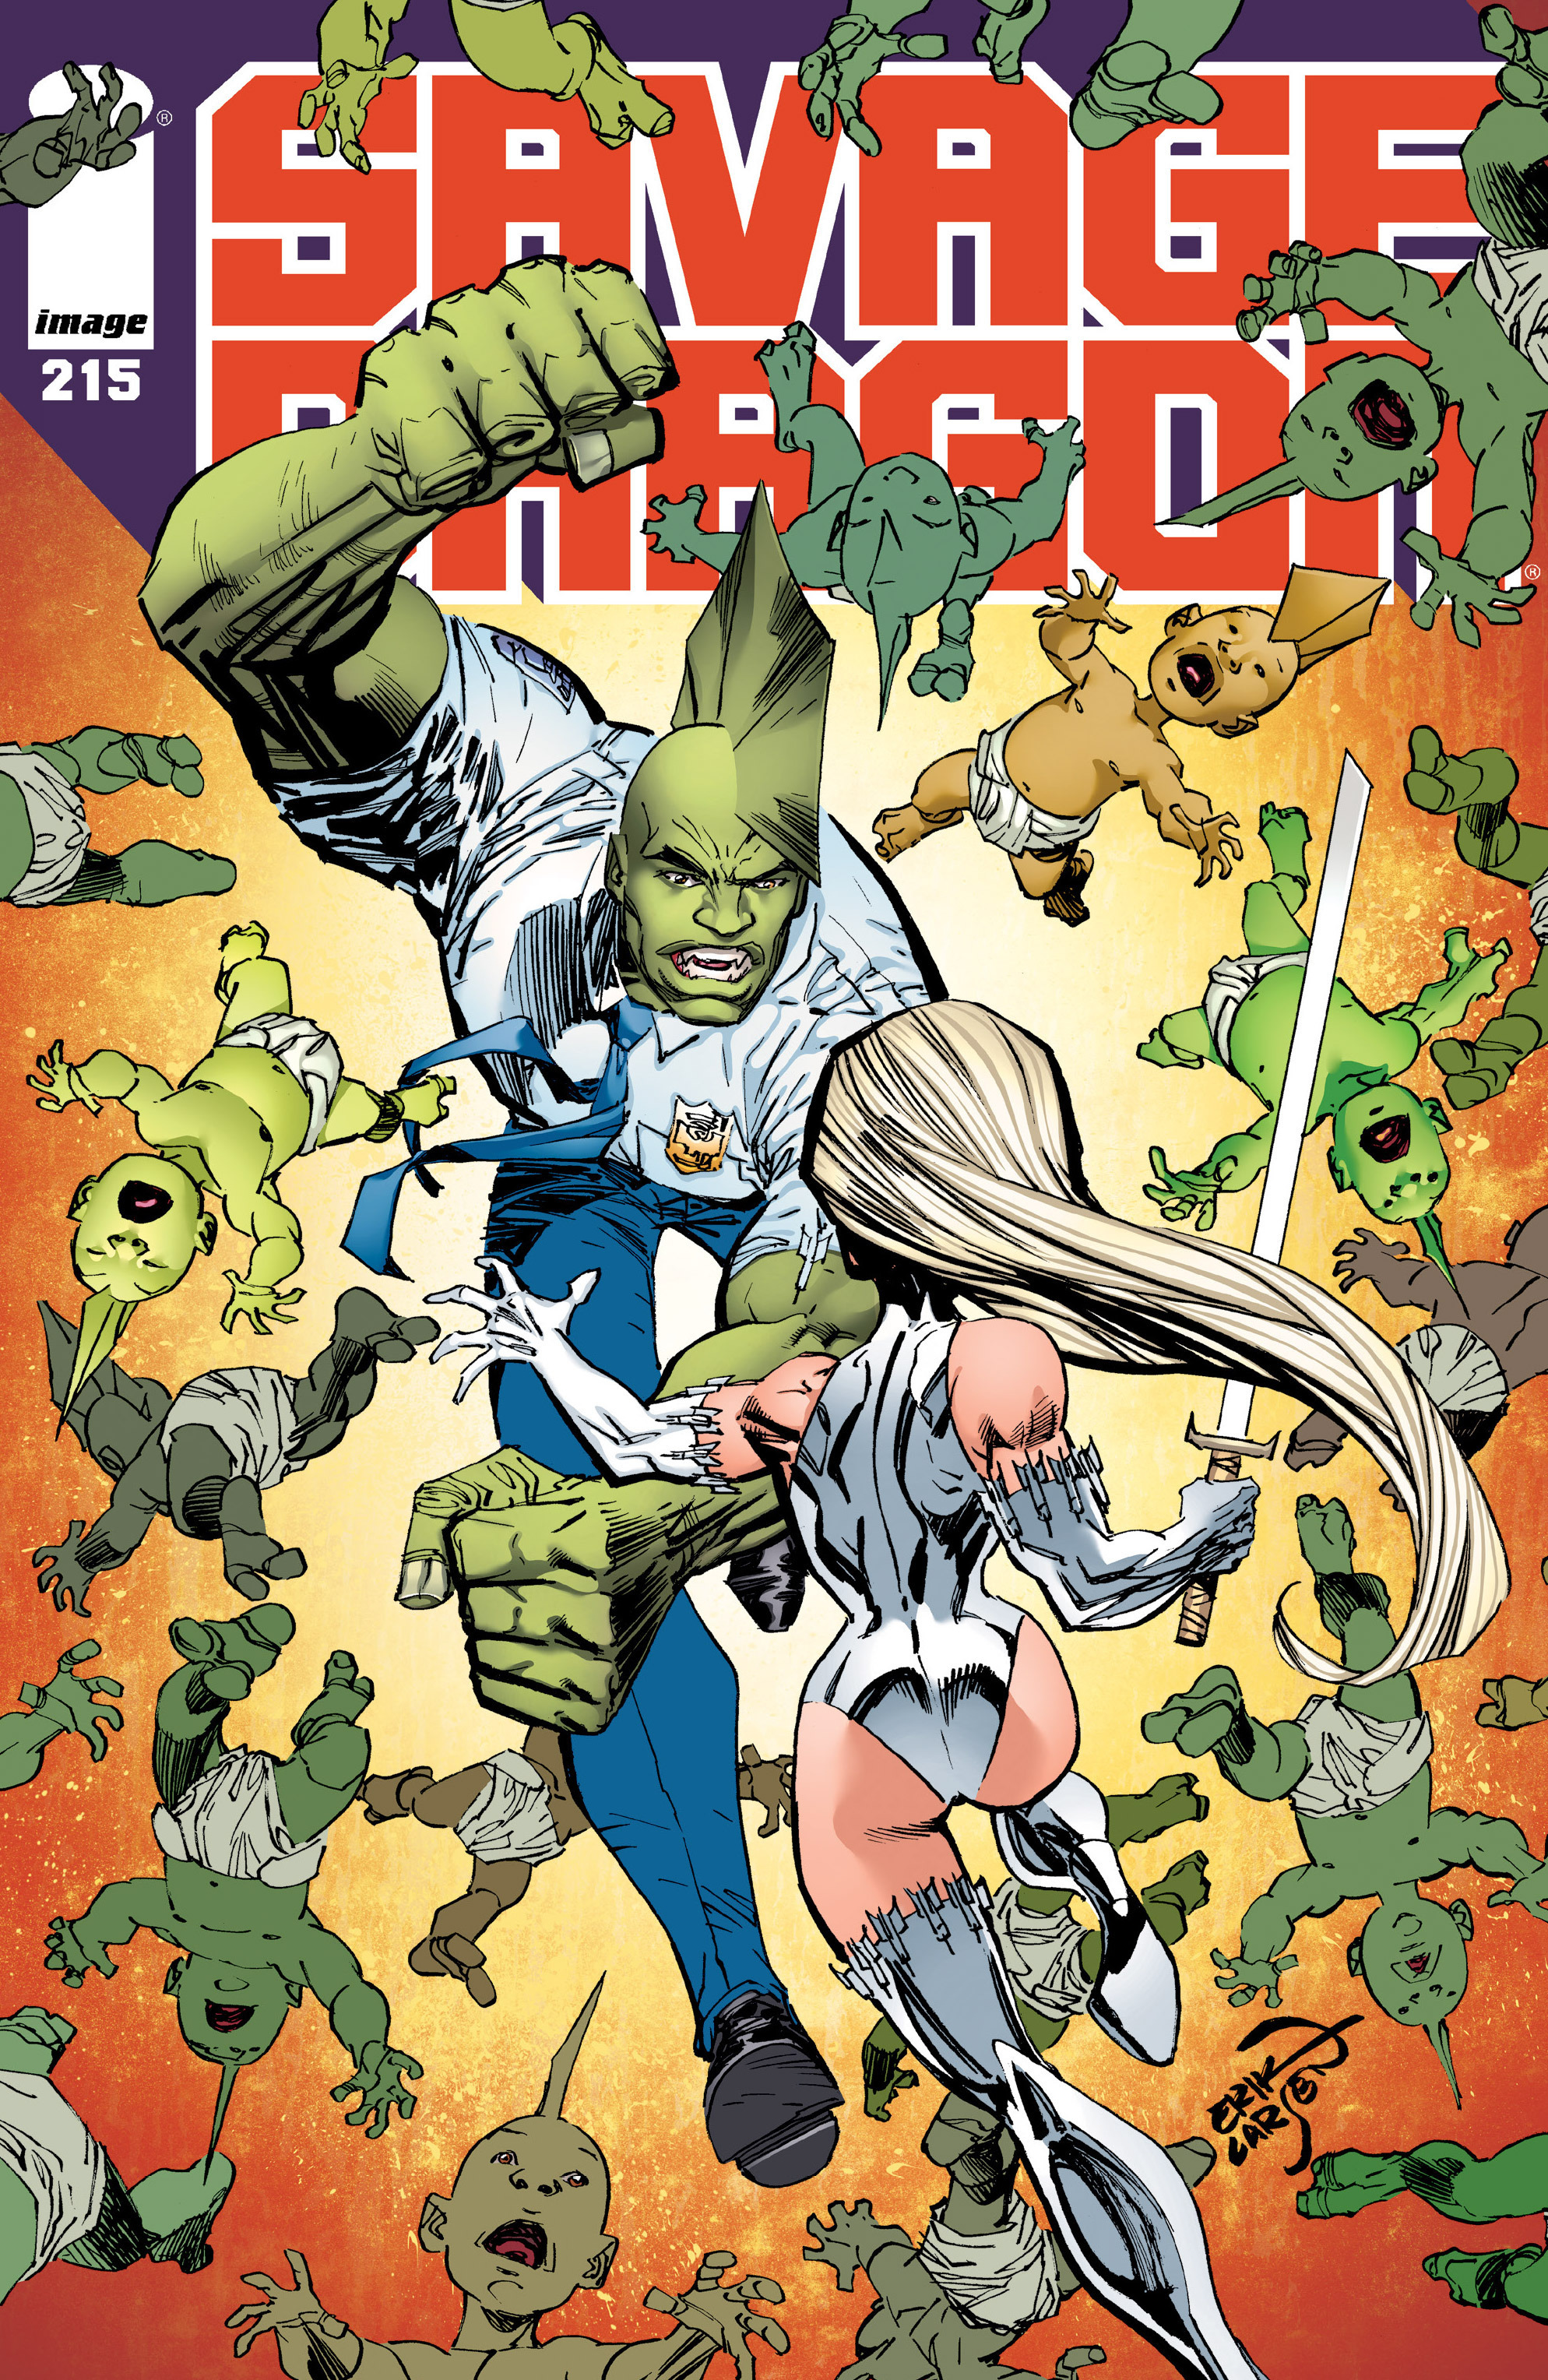 Cover Savage Dragon Vol.2 #215